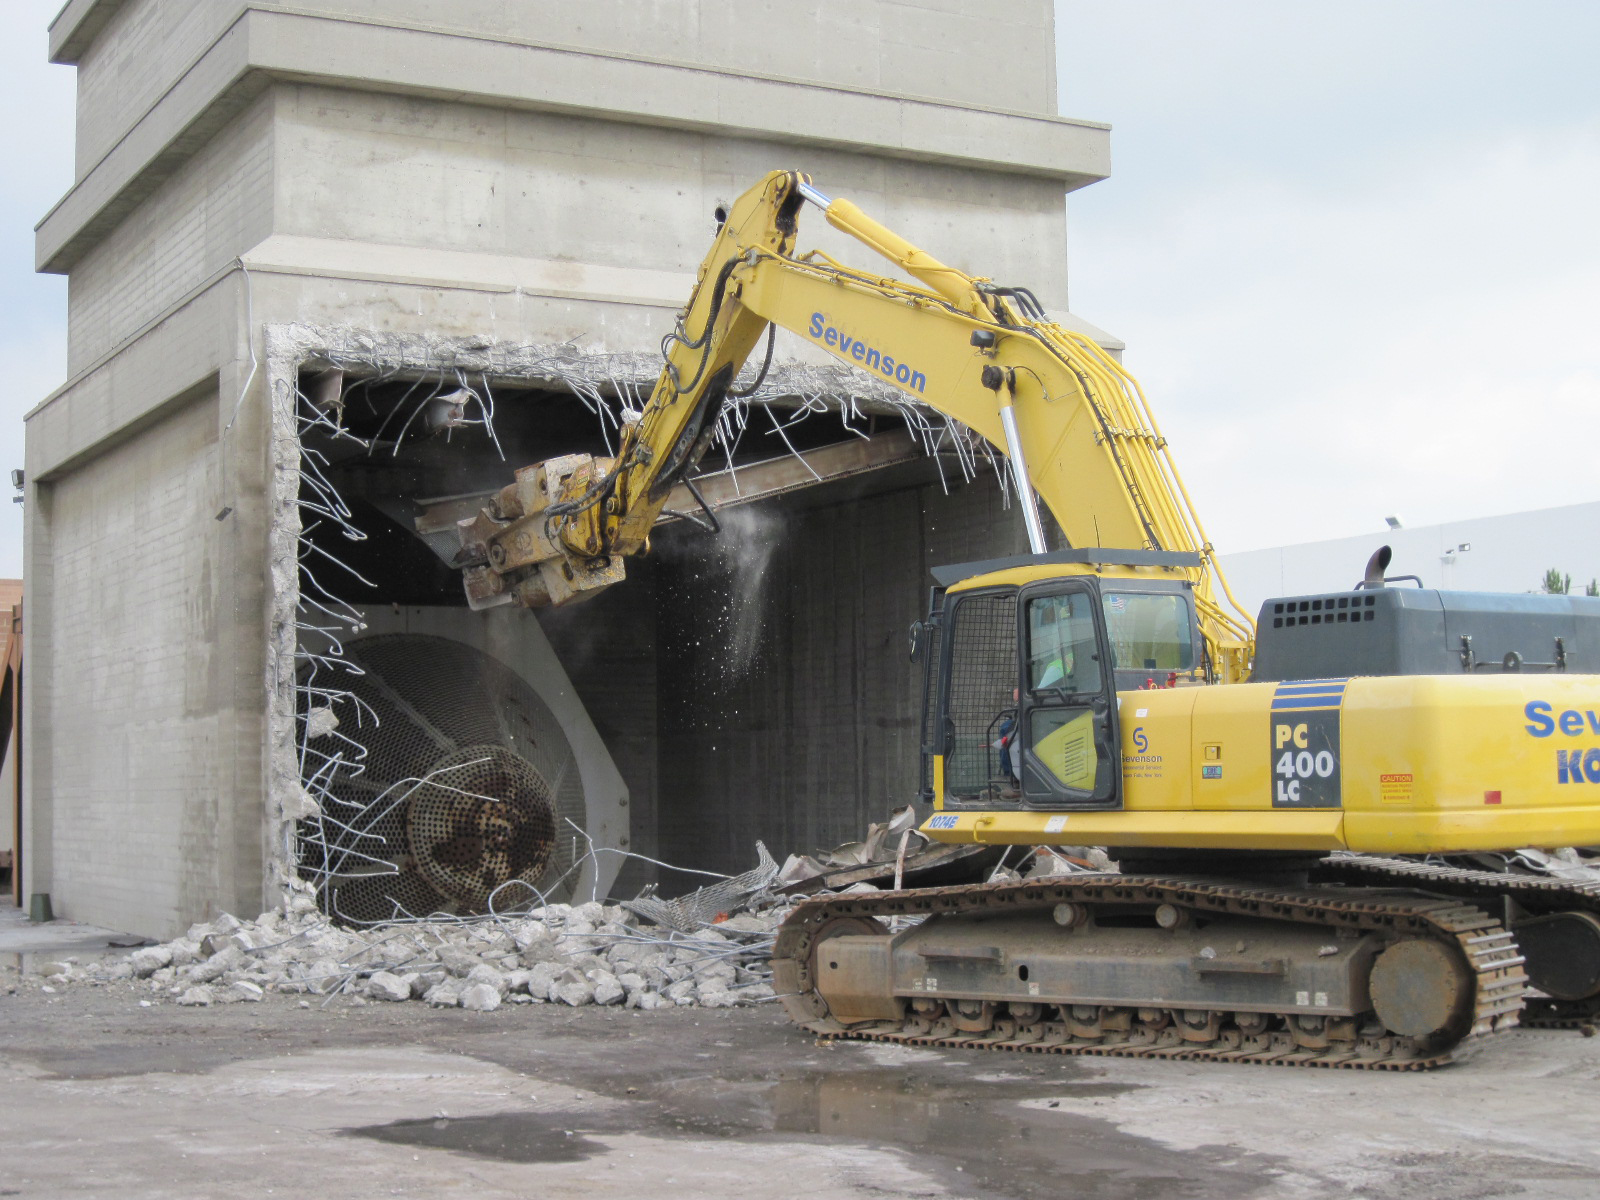 Decontamination & Demolition at Sevenson